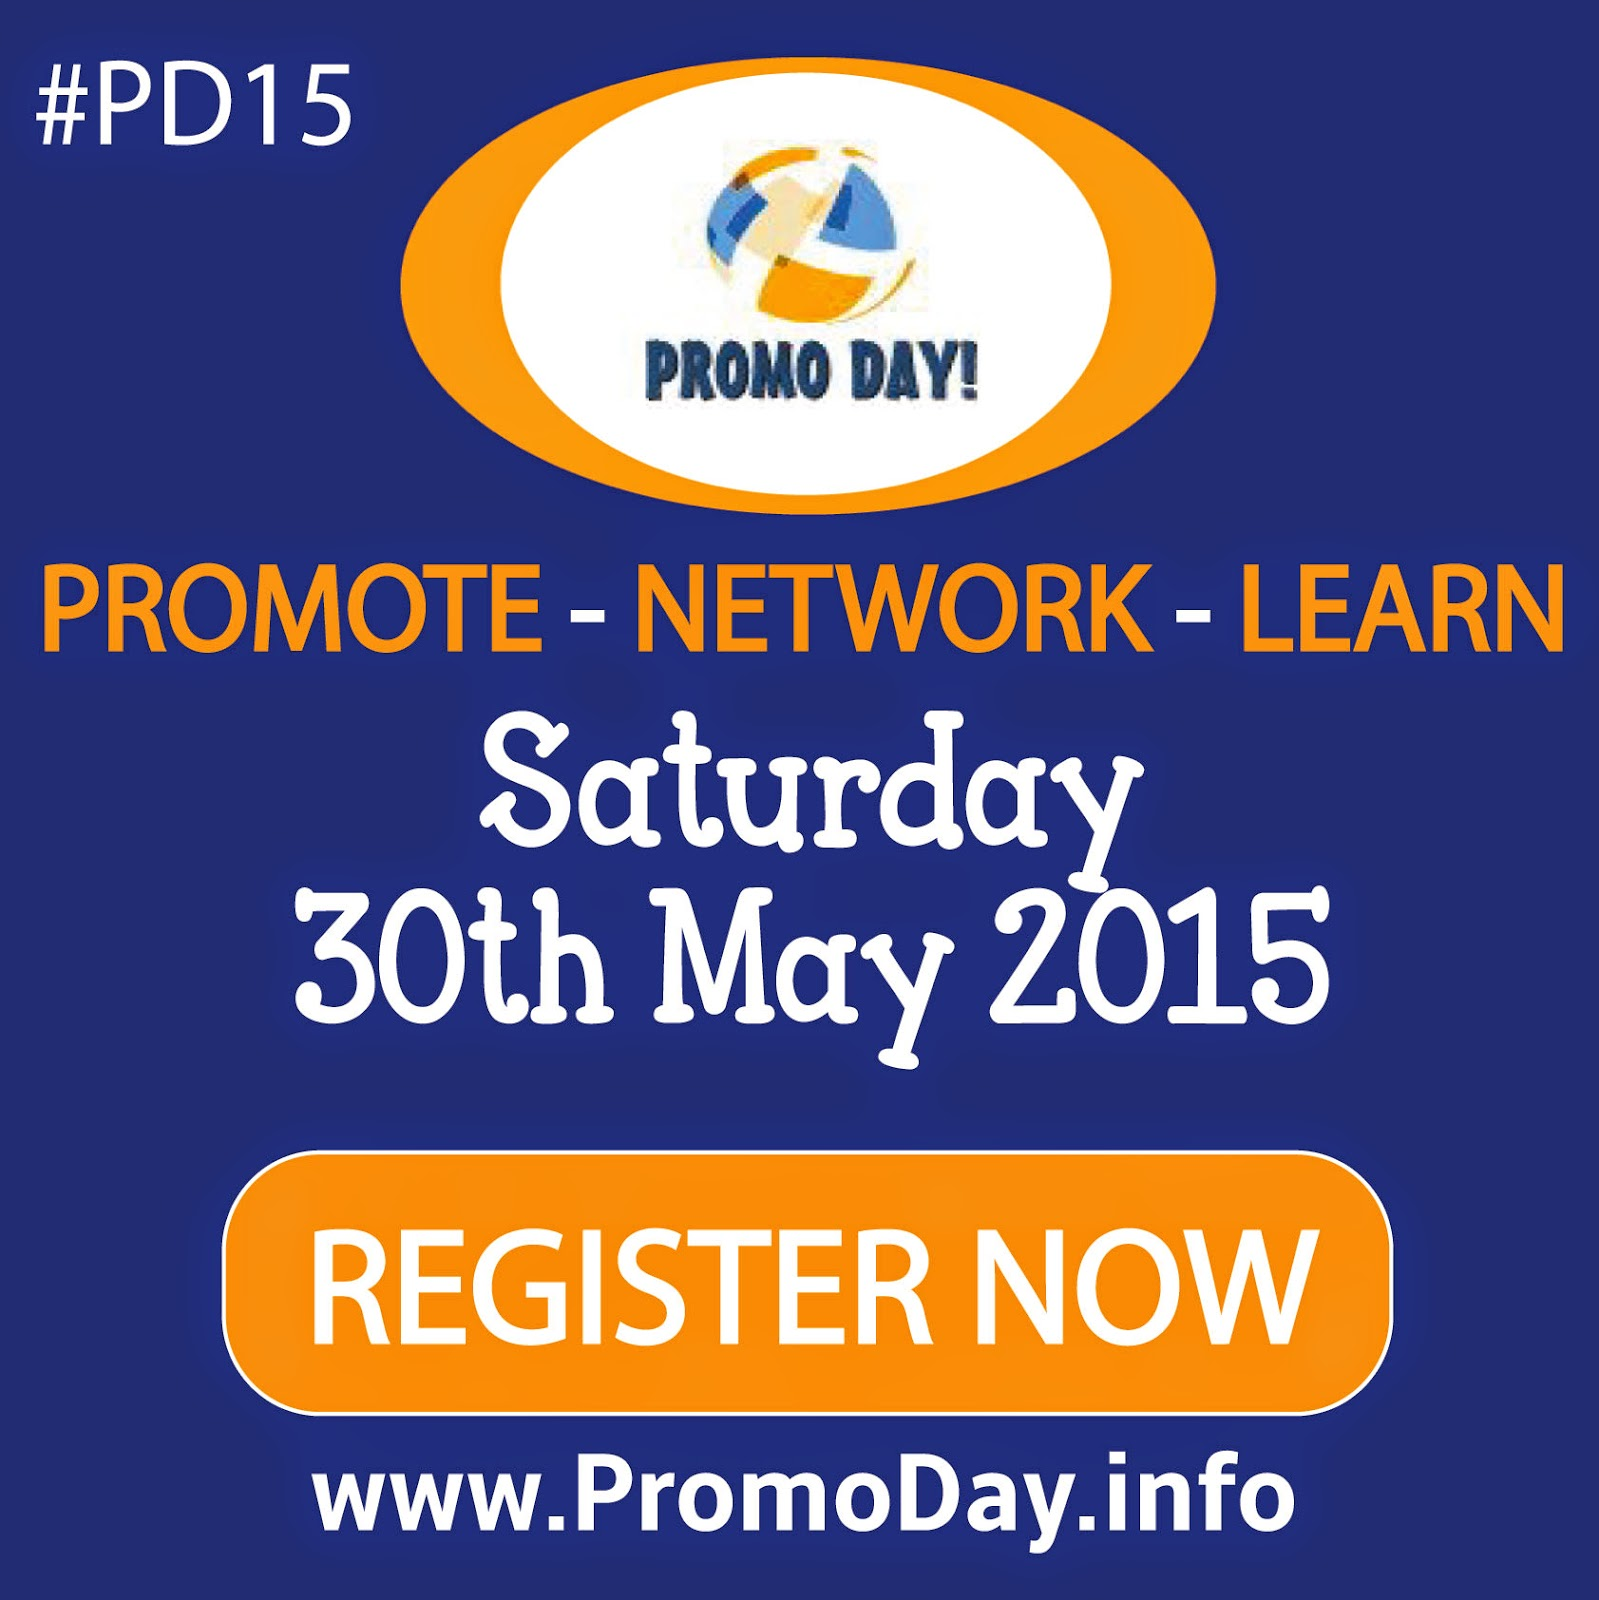 REGISTER NOW! Promo Day, Sat 30th May 2015, www.PromoDay.info